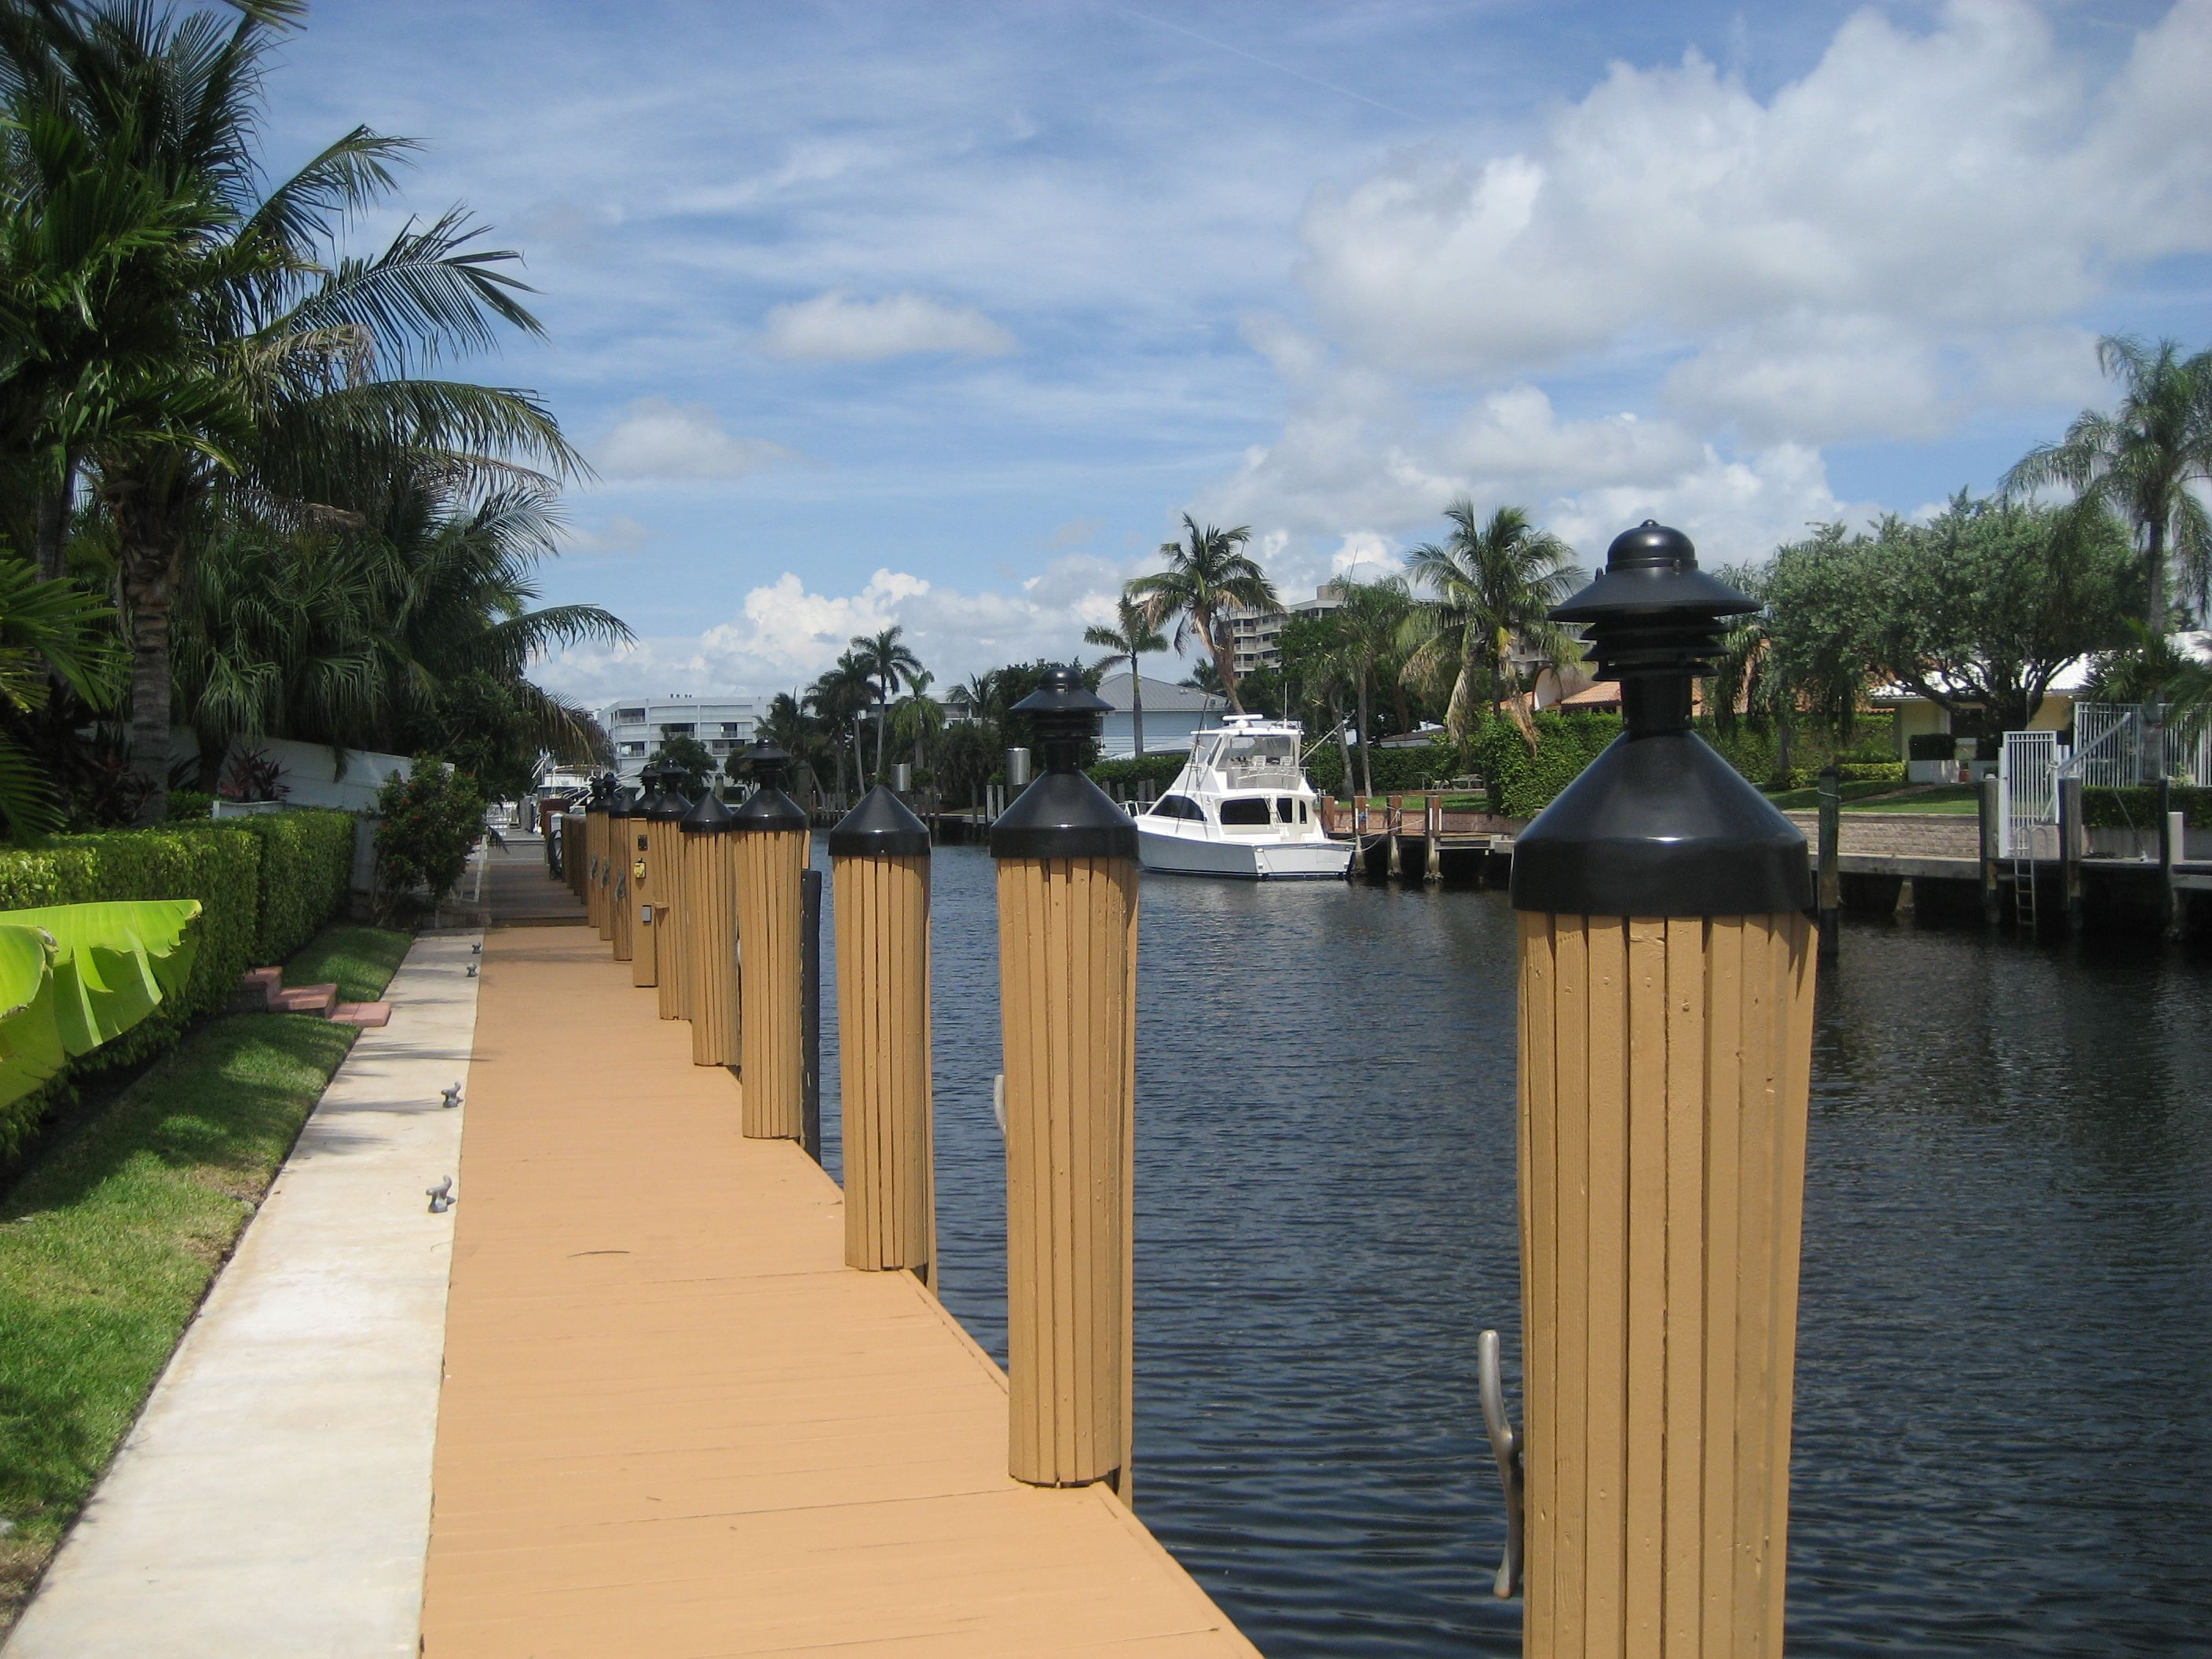 Dress Up The Pilings With Decorative Slats And Add Some